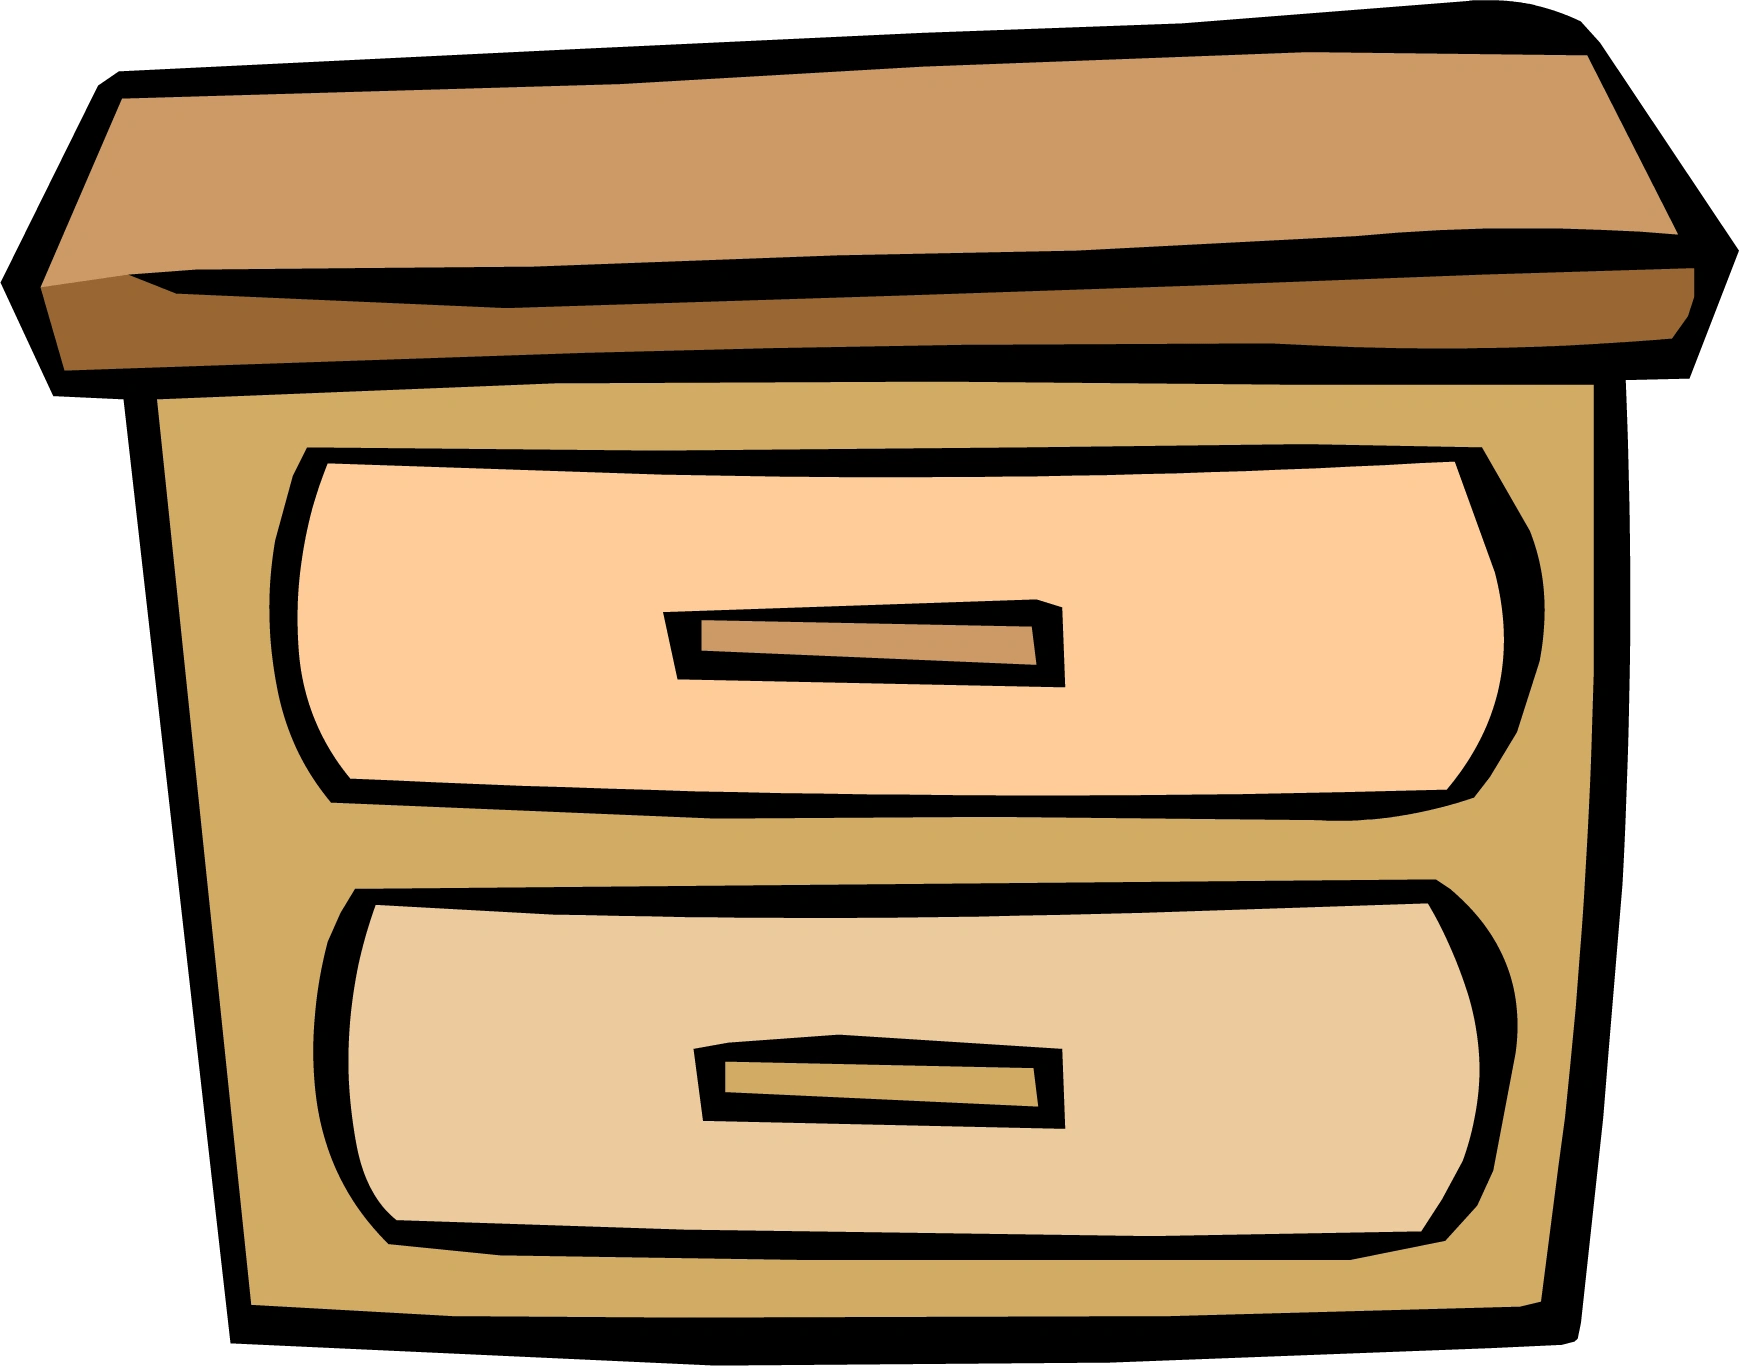 Night Table Clipart Log Drawers Club Penguin Wiki Fandom Powered By Wikia